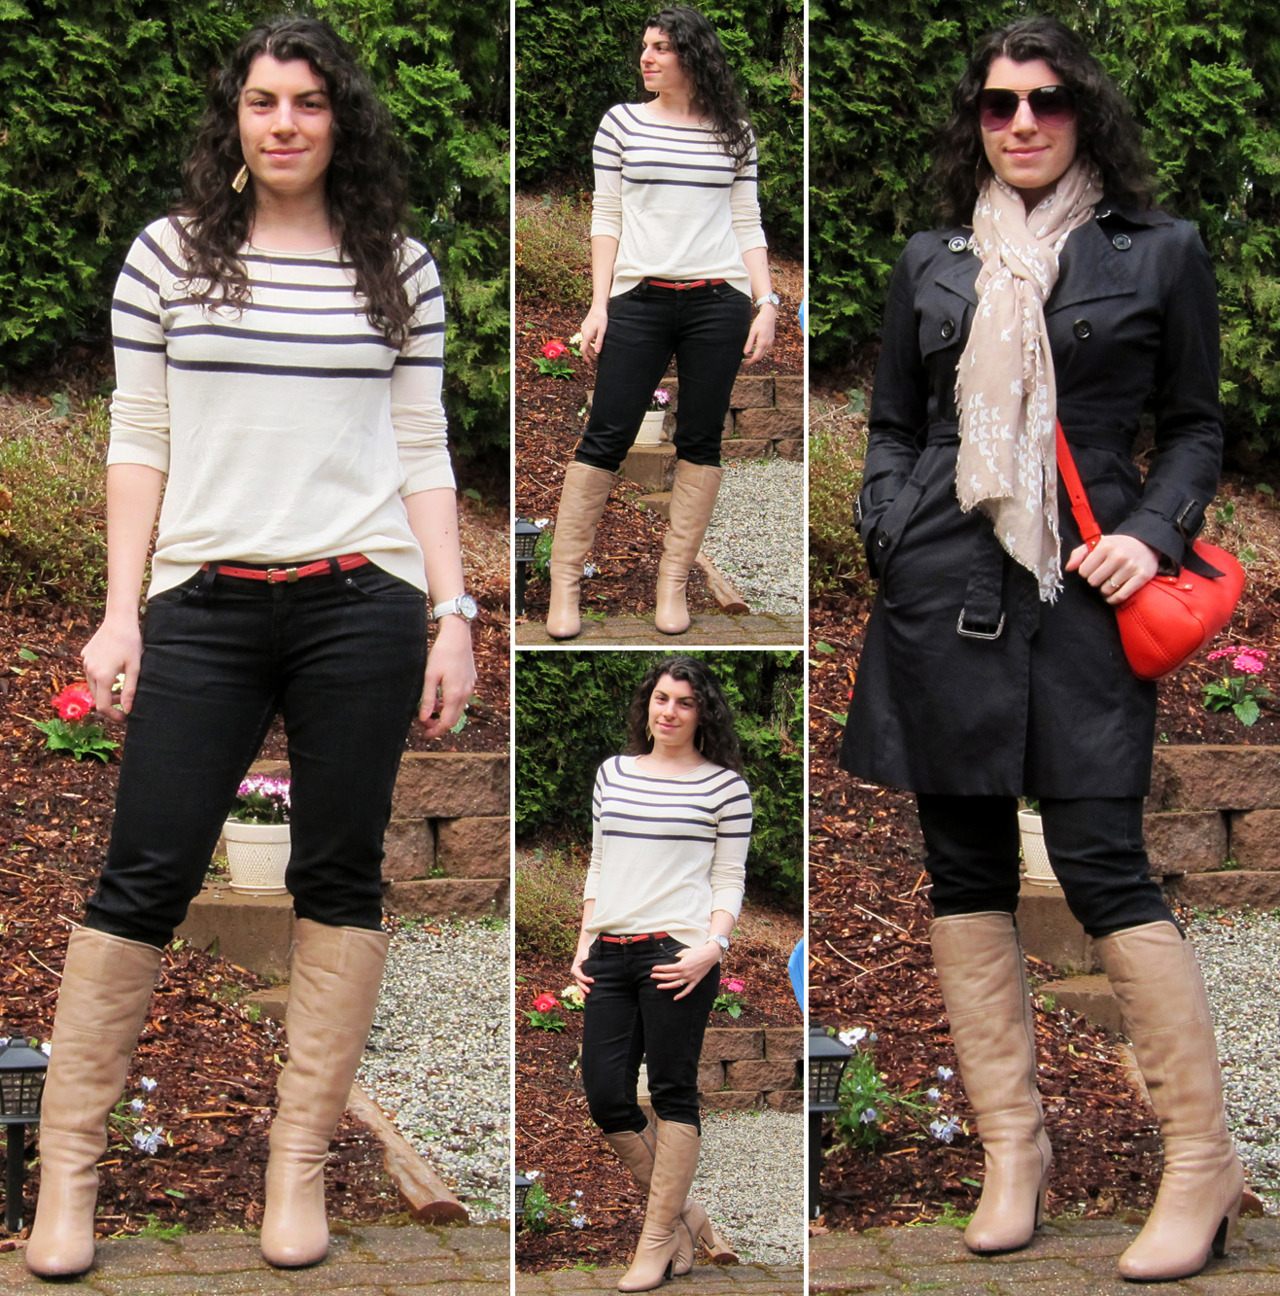 "04.06.2012 [fri] Worn to: work, double date w/Kindah and Michael (Tulalip Casino to see Brad Garett, dinner @ Bob's Burgers, tv at our place) Sweater: GAPBelt, watch, earrings: TargetJeans: Empyre (via Zumiez)Boots: Miz Mooz ""Flynn"" (gift)Trench: Banana Republic (via YLF swap)Scarf: Steve Madden (via Nordstrom)Purse: Kate SpadeShades: Forever 21  Thoughts:I felt great in this outfit, though felt under dressed at the comedy show. Maybe it had to do with the room being so fancy, or the ushers being in cocktail attire, but even though we were on the dressier end of the patron spectrum both my husband and I felt like we should've dressed much nicer!   Behind the outfit:Yes I know I wore these boots only two days ago but after the comments I got yesterday, I just wanted to wear some of my favorite things today! And I really love how they look over my black skinnies, so I formed the outfit around that. I definitely prefer to have a good dose of lightness with this pairing, and today I was feeling like wearing something especially light so I chose this cream and navy sweater. It drapes really well, so I enjoy semi-tucking it and did so today. I added the coral skinny belt for a little pop of color, and also because I'm enjoying filling belt loops with slim belts these days. Gold earrings for added warmth, white watch for added brightness, and hair down to play into the outfit's softness."